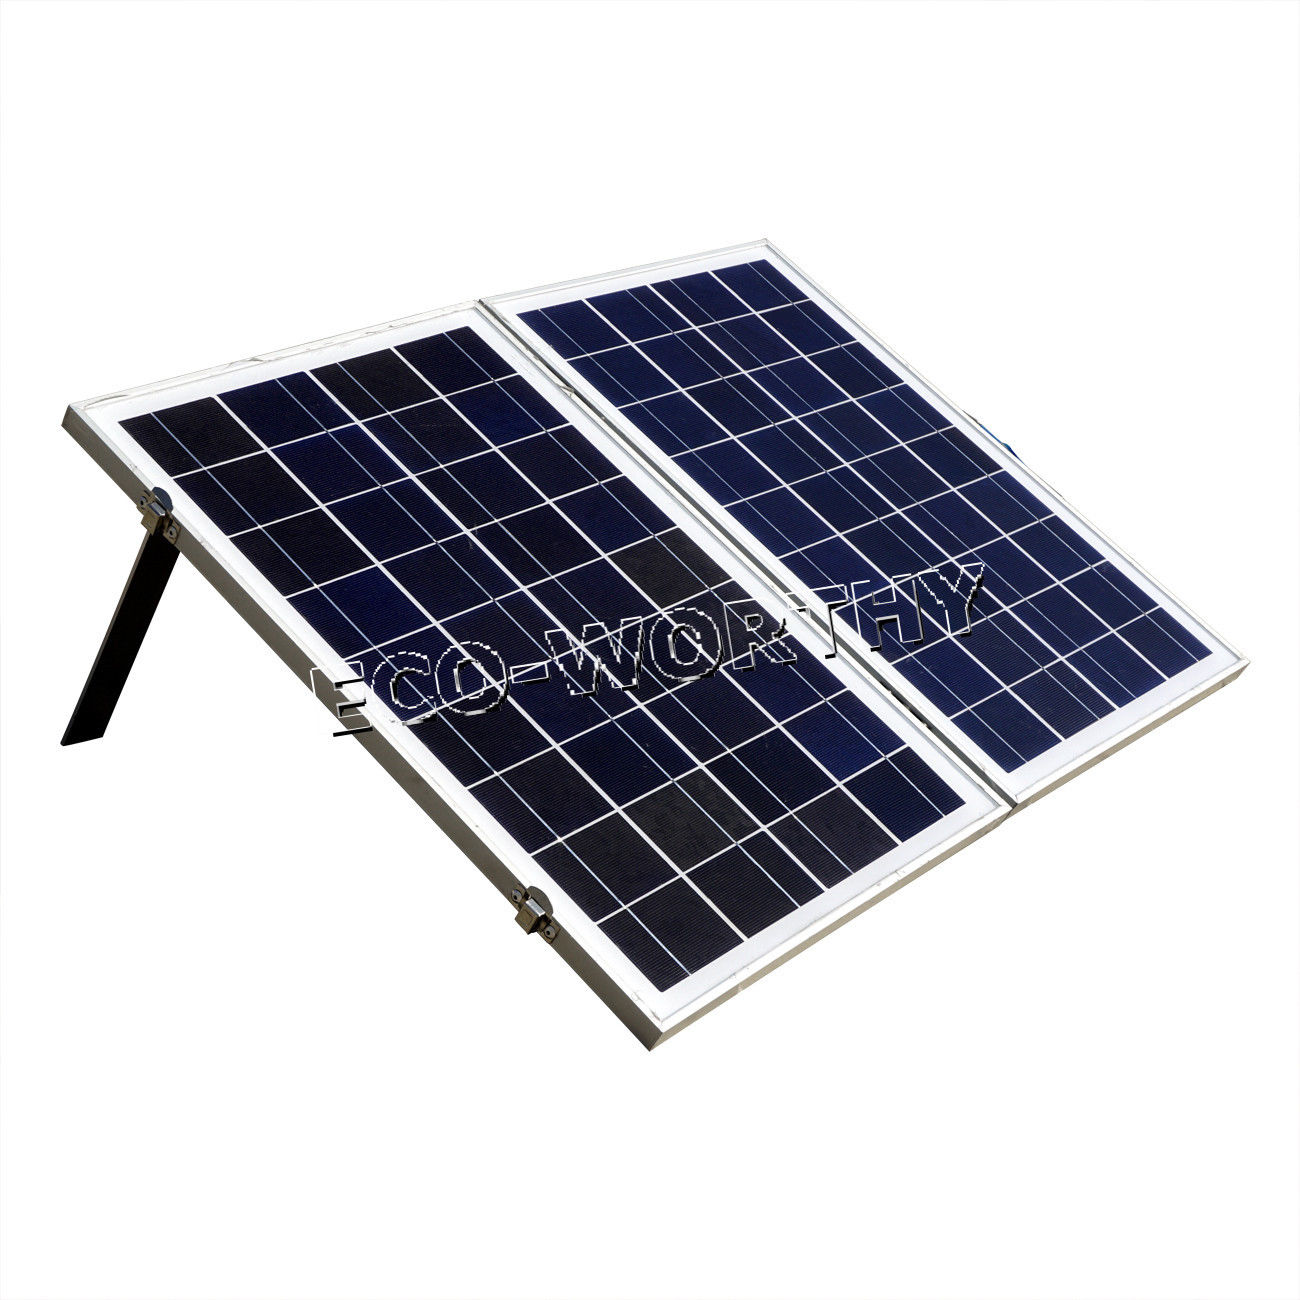 Eco-worthy 50W Foldable Folding Poly Solar Panel Portable Complete Kit for 12V Camping Boat RV